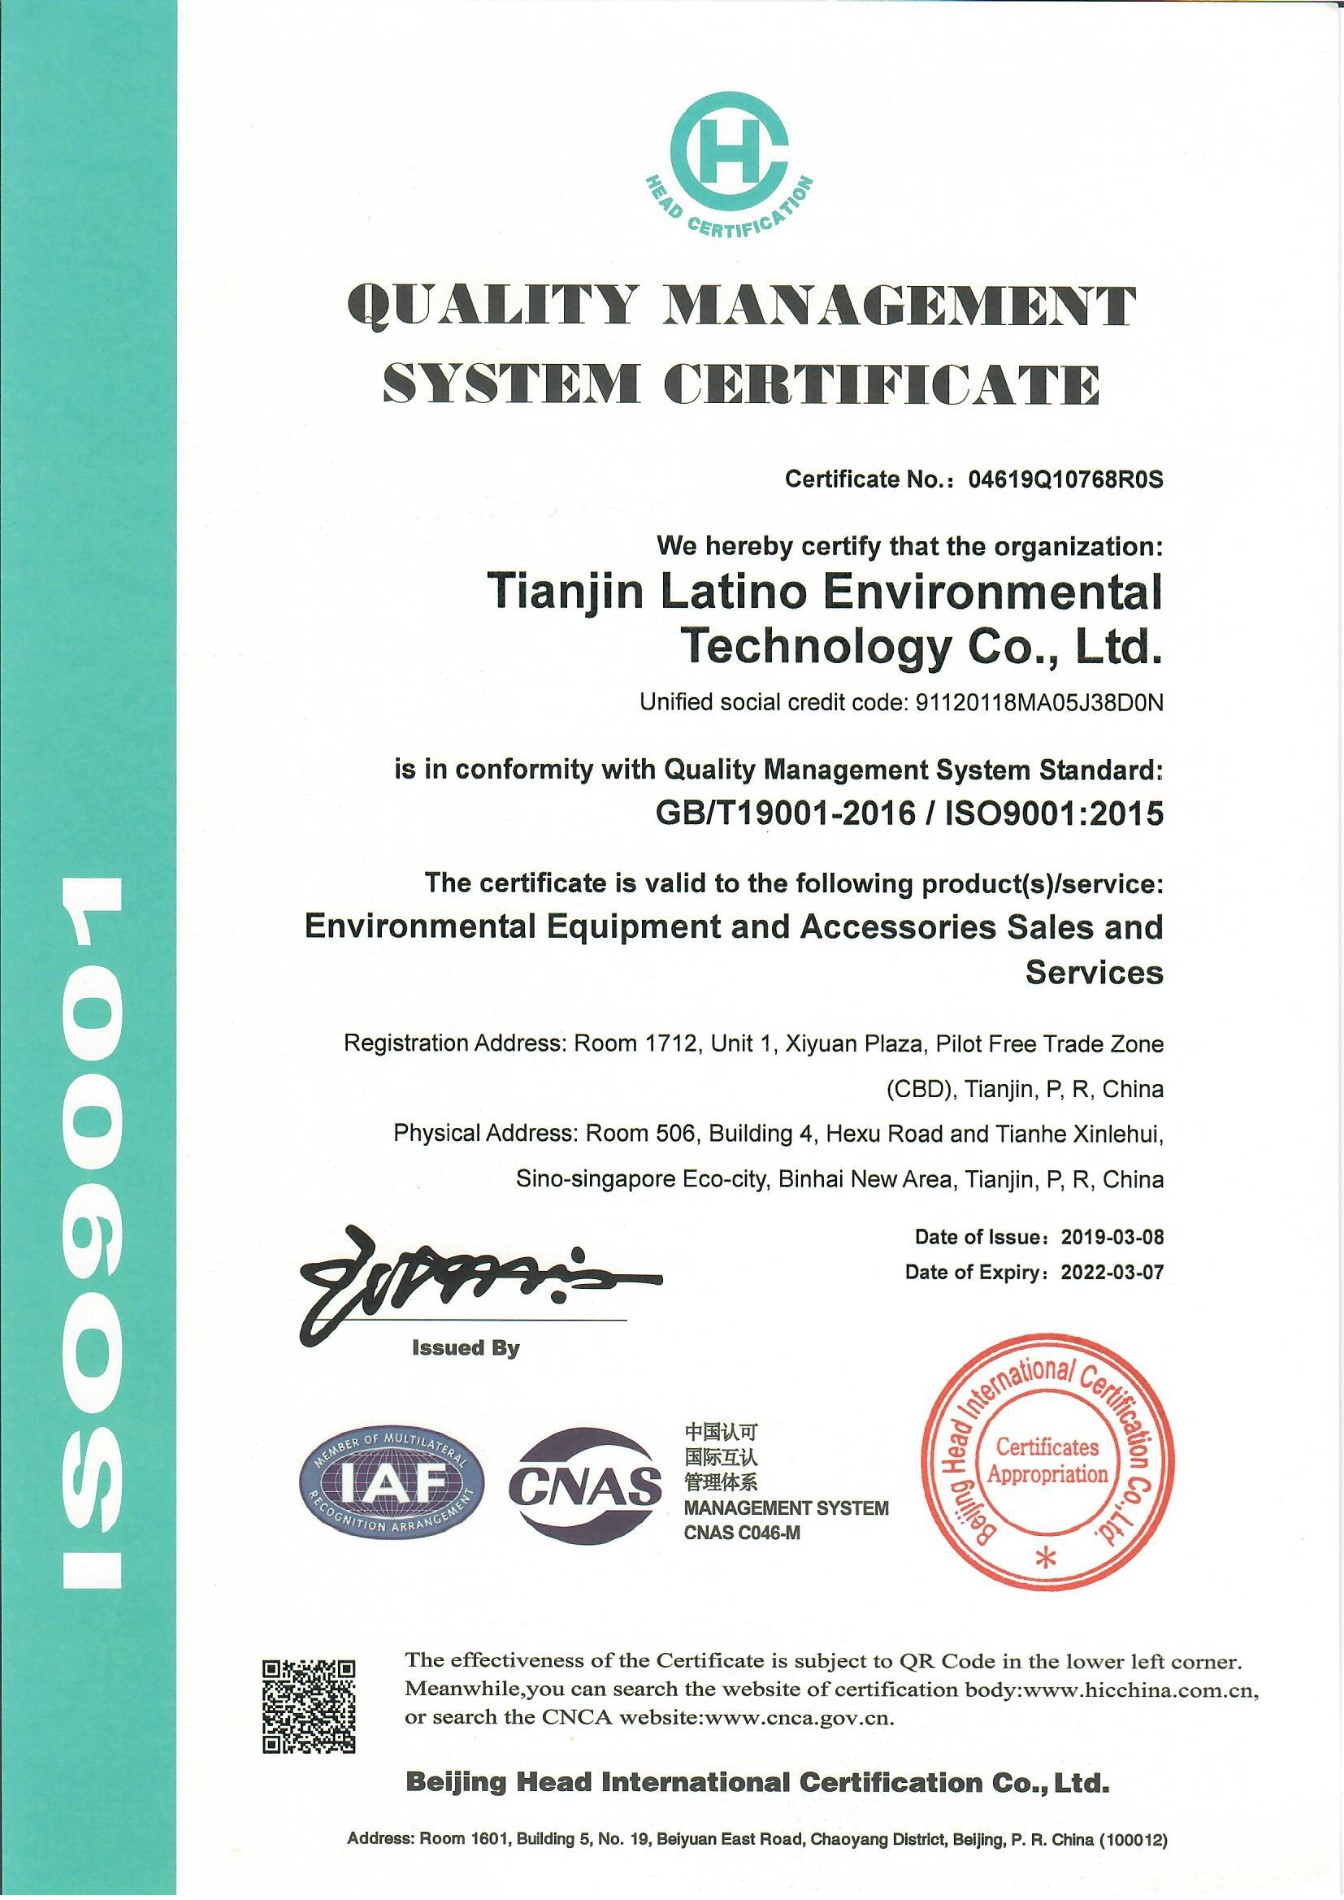 International Organization for Standardization  Certificate 9001- Quality management system certificate